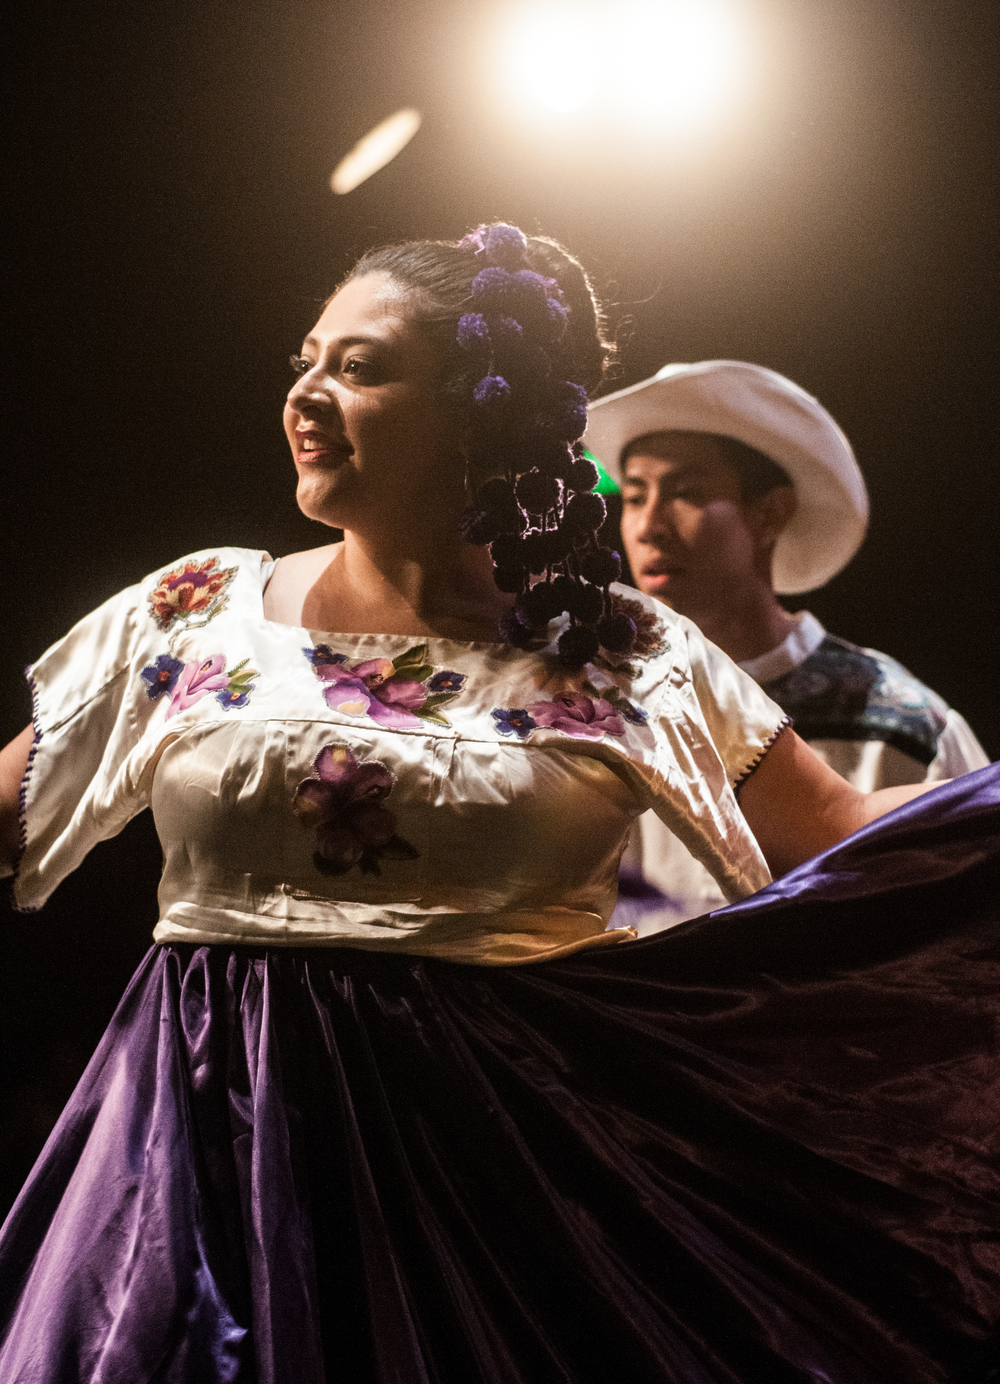 STAR // Gustavo Vasquez  Jacqueline gonzalez and misael espinoza, both a part of the ballet folklorico de sonoma club on campus, performing a dance during the 26th Annual Fuentes Academic Workshop at Sonoma State, on Saturday, March. 7, 2015 in ives 101.